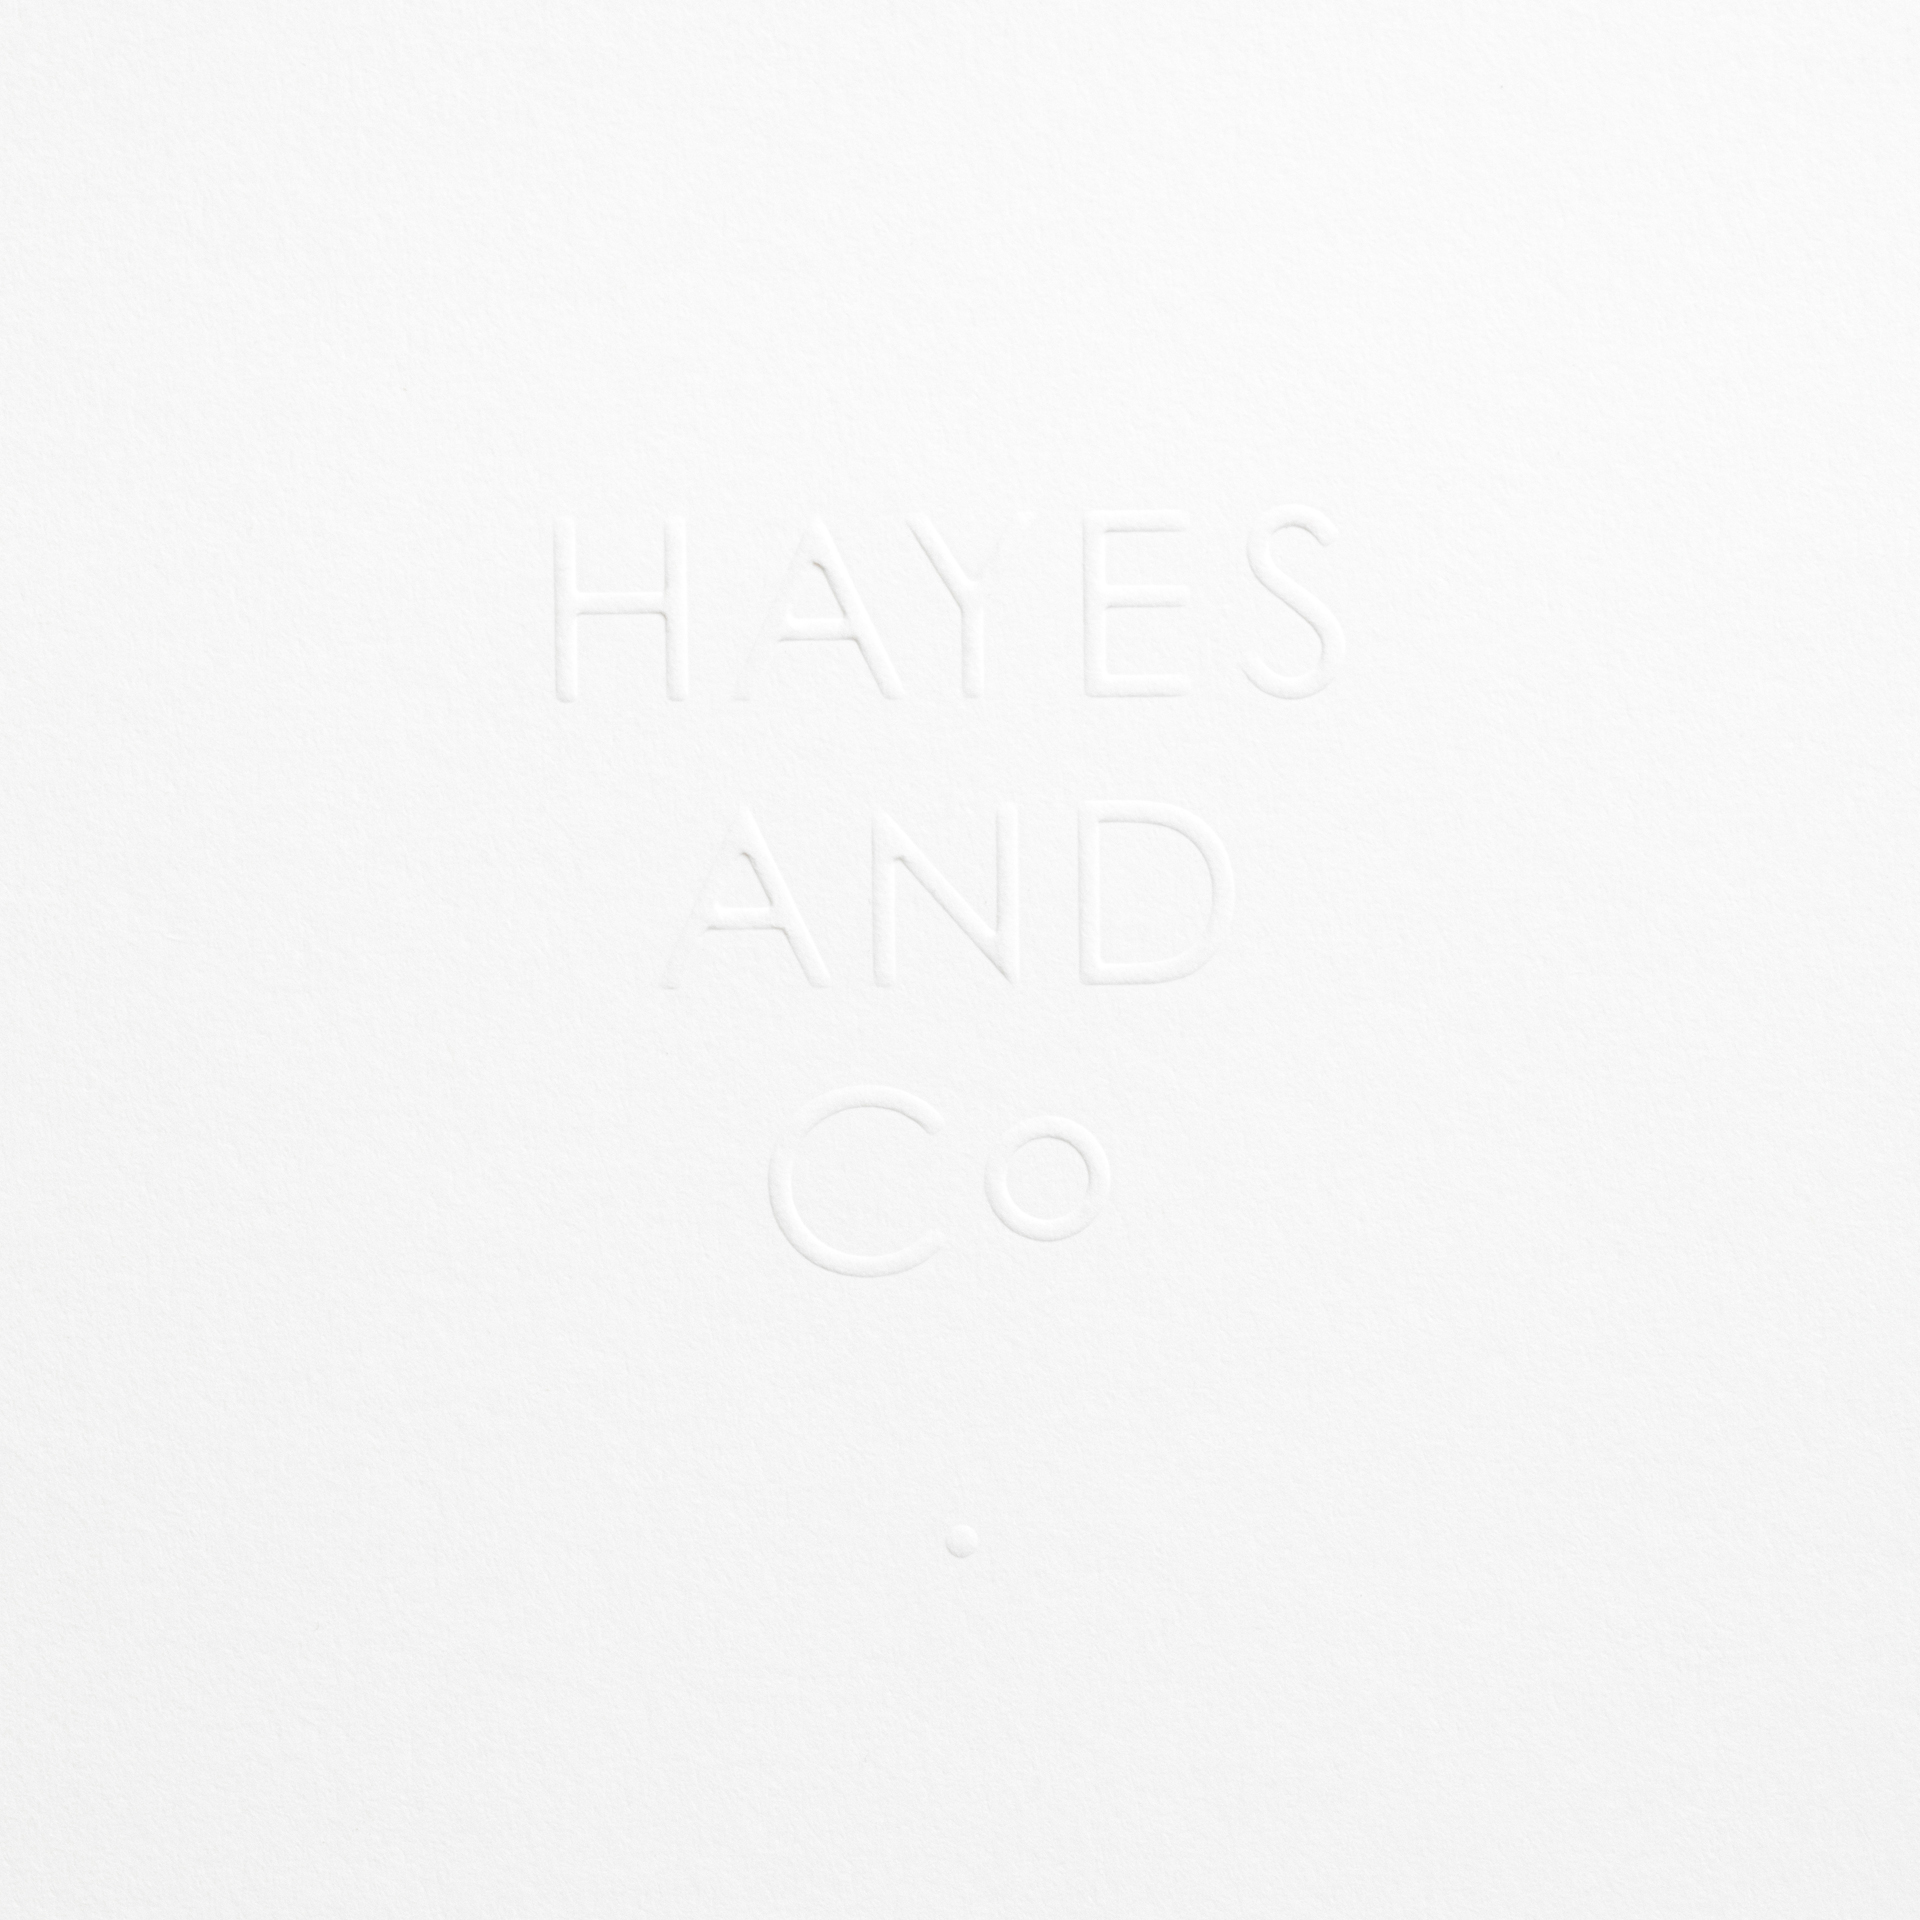 Hunter-Studio_Hayes-and-Co_Brand-Identity_Design_New-Zealand03.jpg